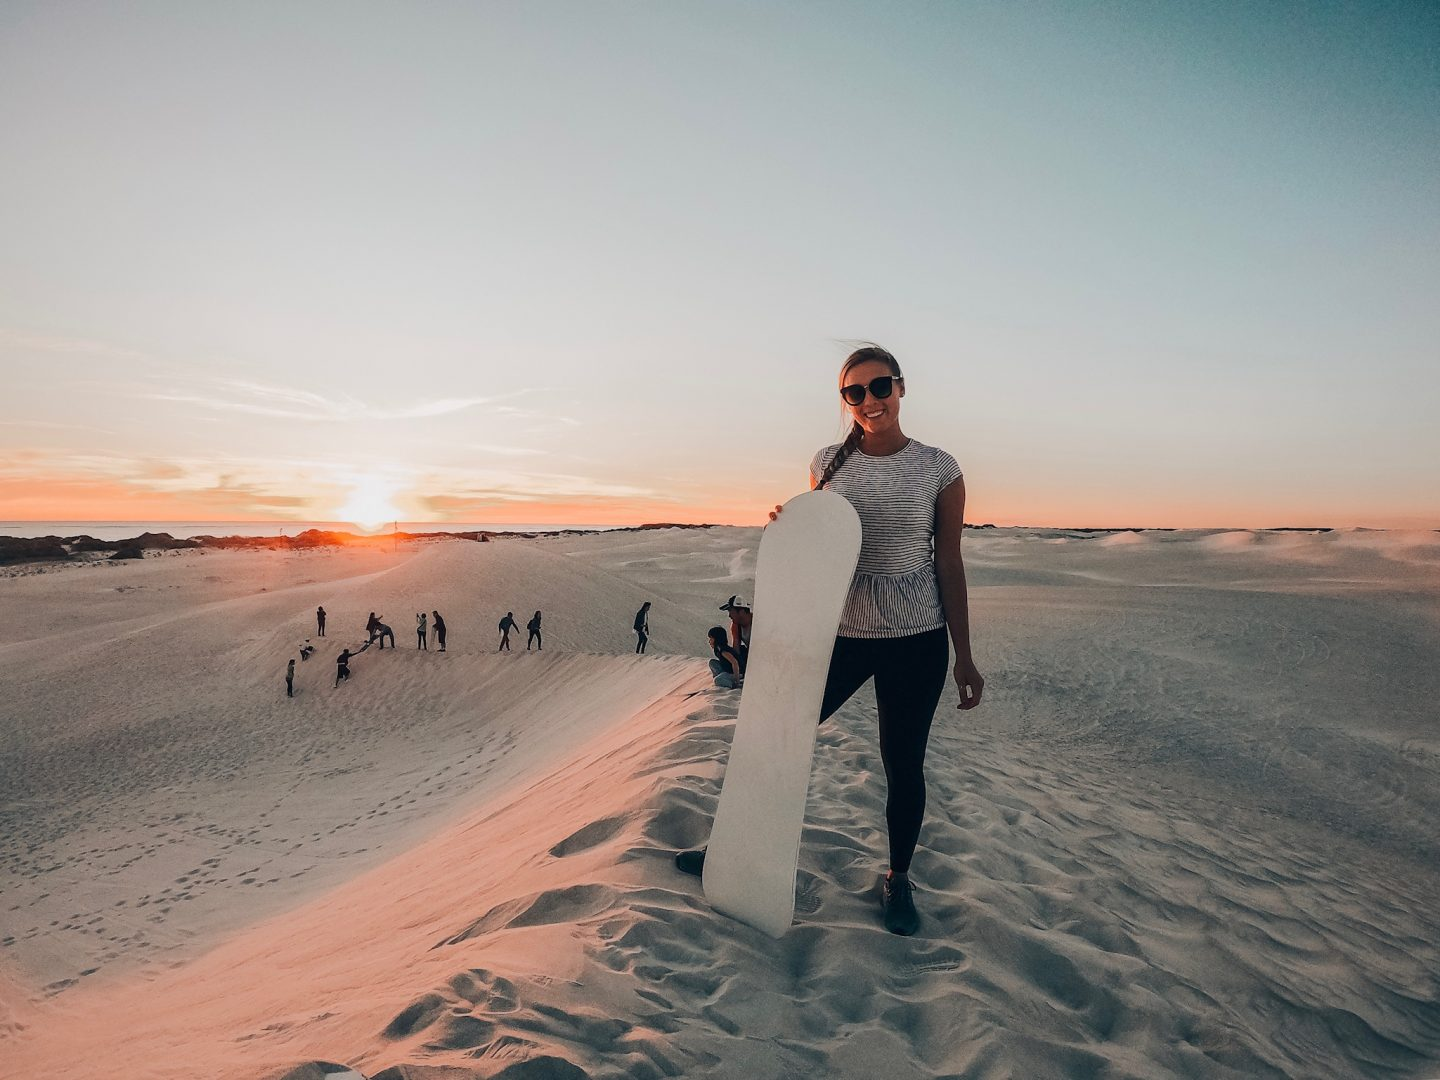 Sand boarding at sunset in Western Australia!